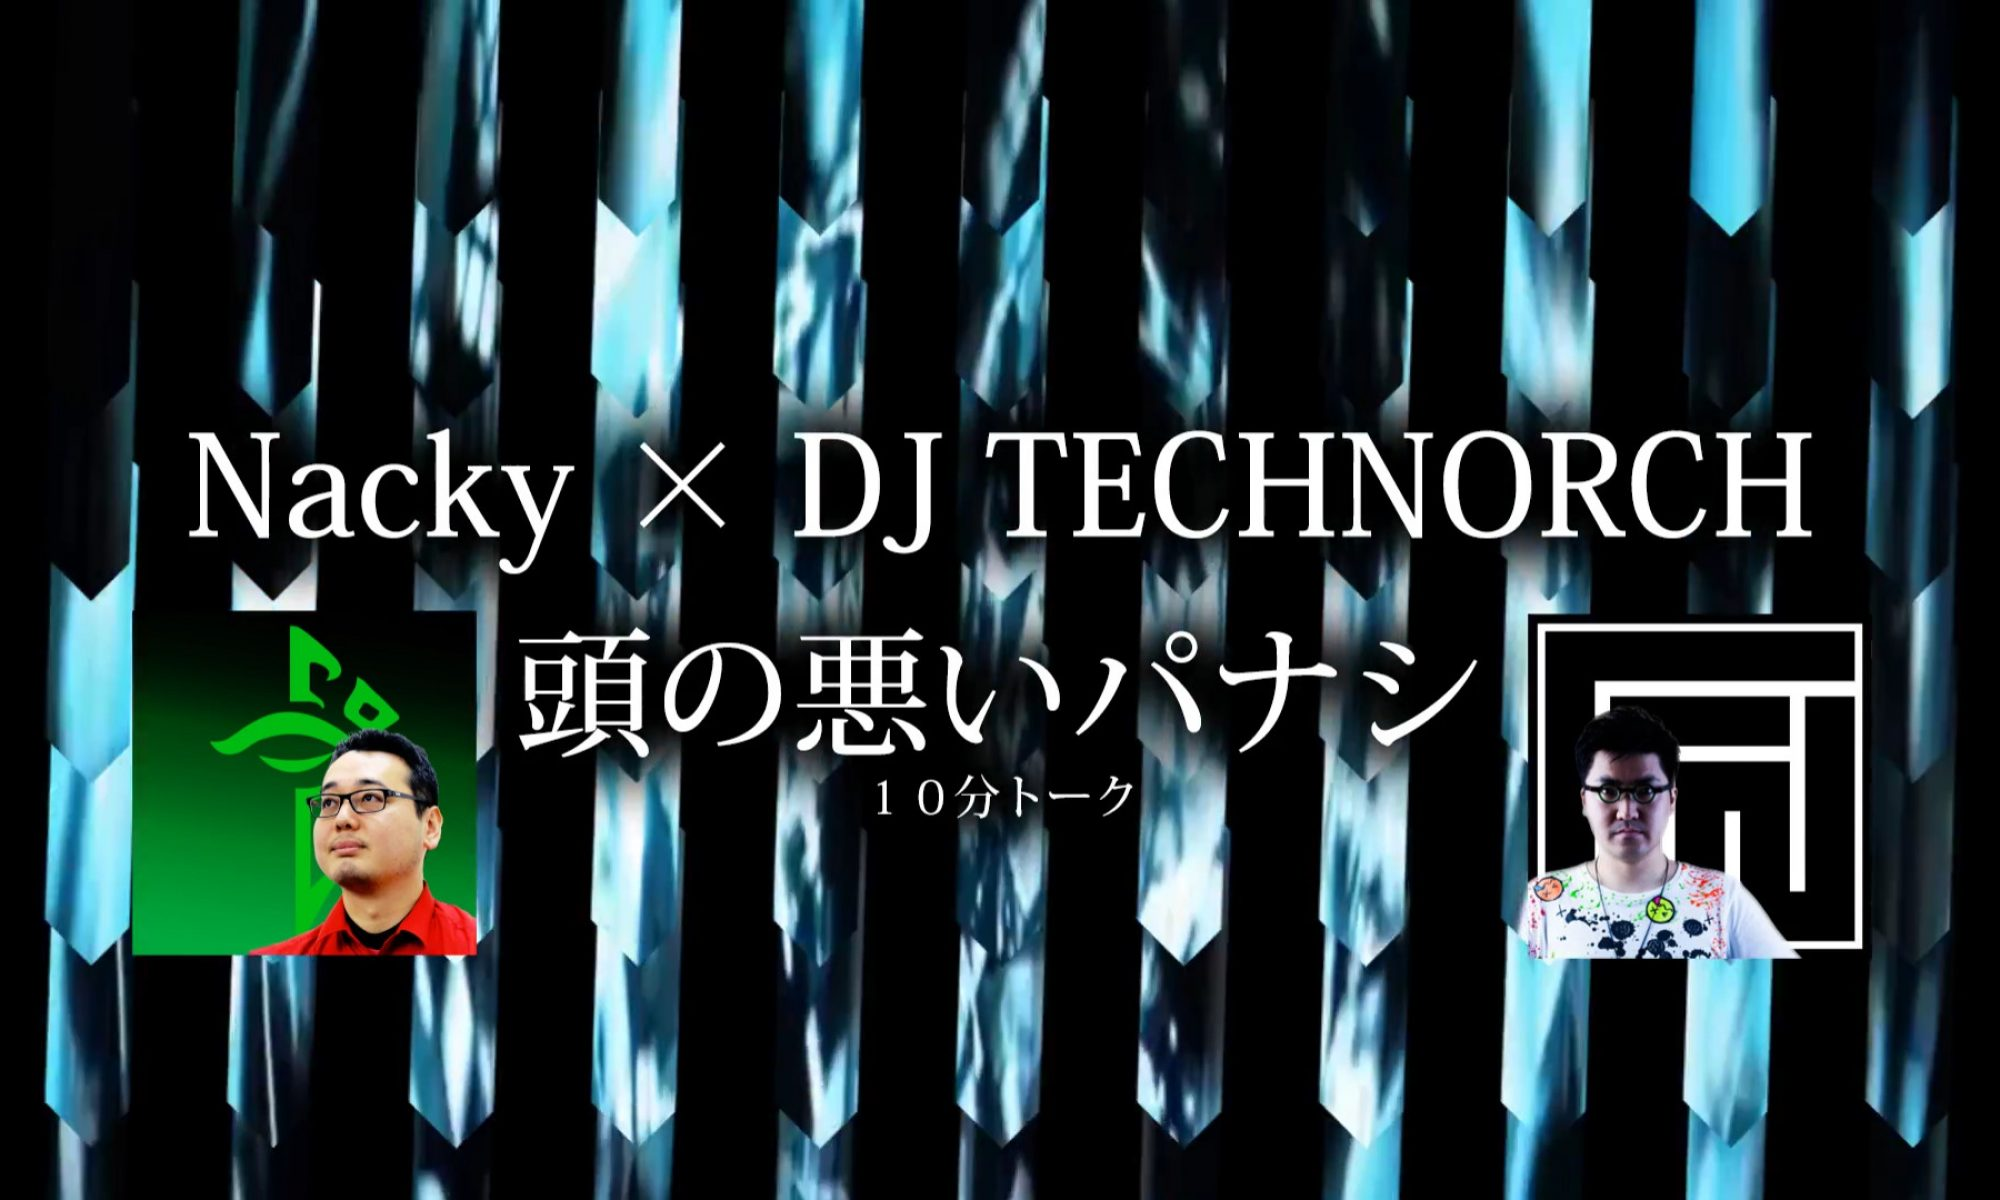 Nacky × DJ TECHNORCH 頭の悪いパナシ podcast